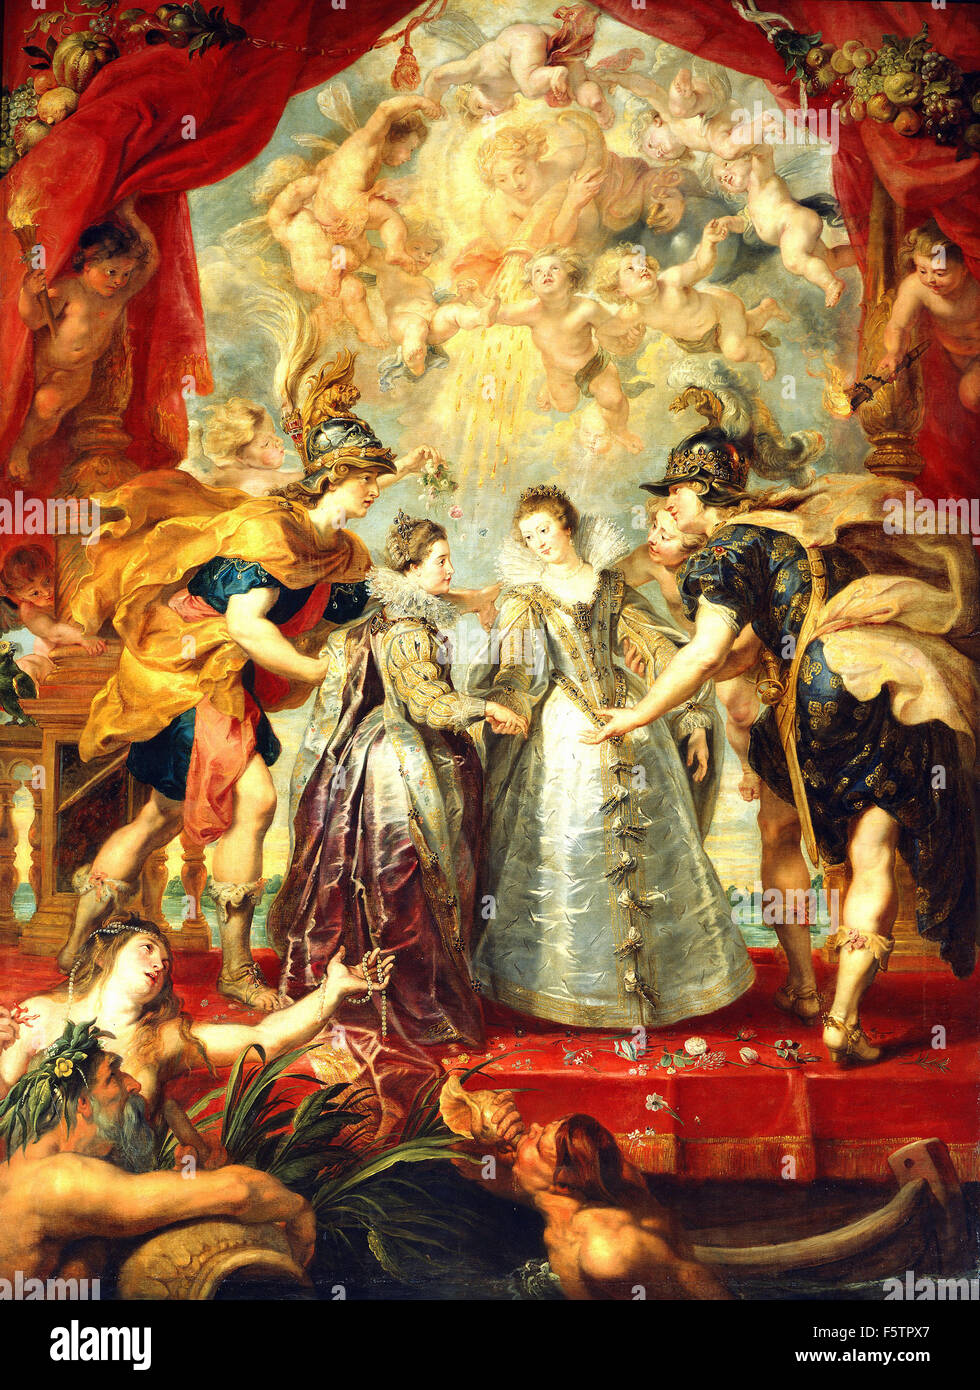 Peter Paul Rubens - Exchange of Two Princesses from France and Spain - Stock Image